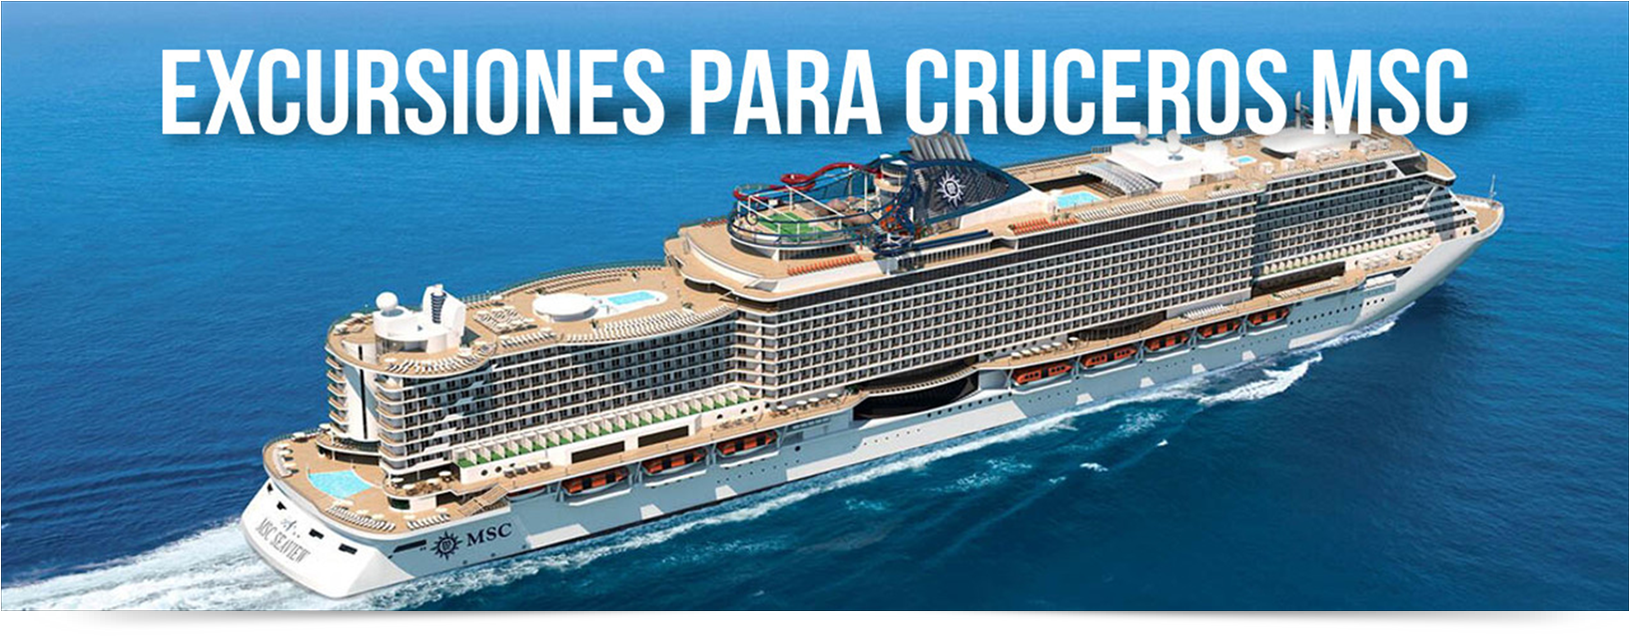 EXCURSIONES CRUCEROS MSC